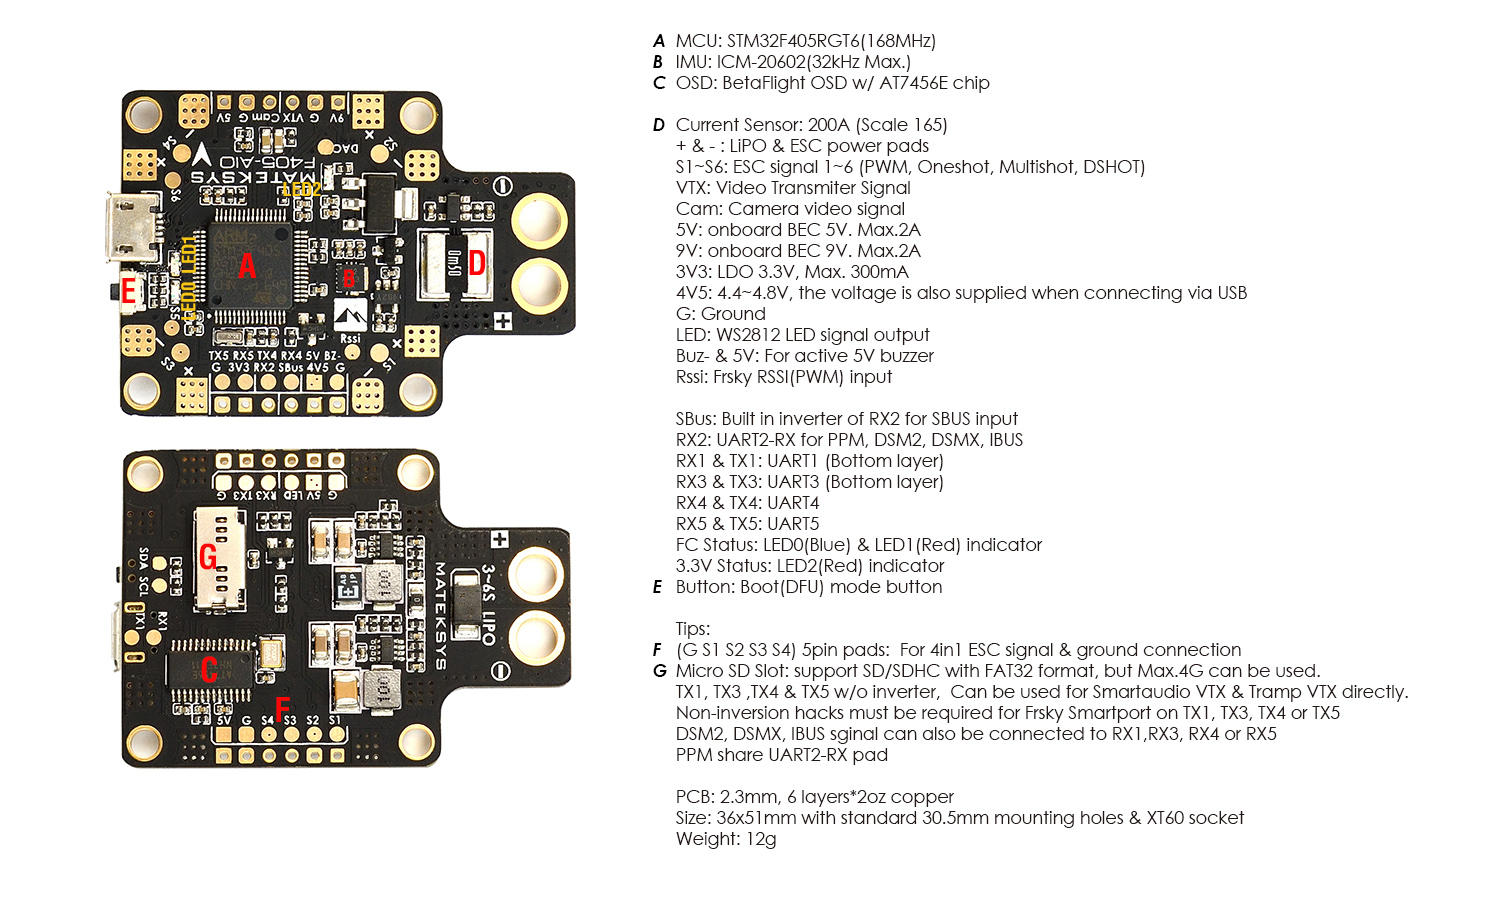 Mateksys F405 F4 Flight Controller ALL IN One